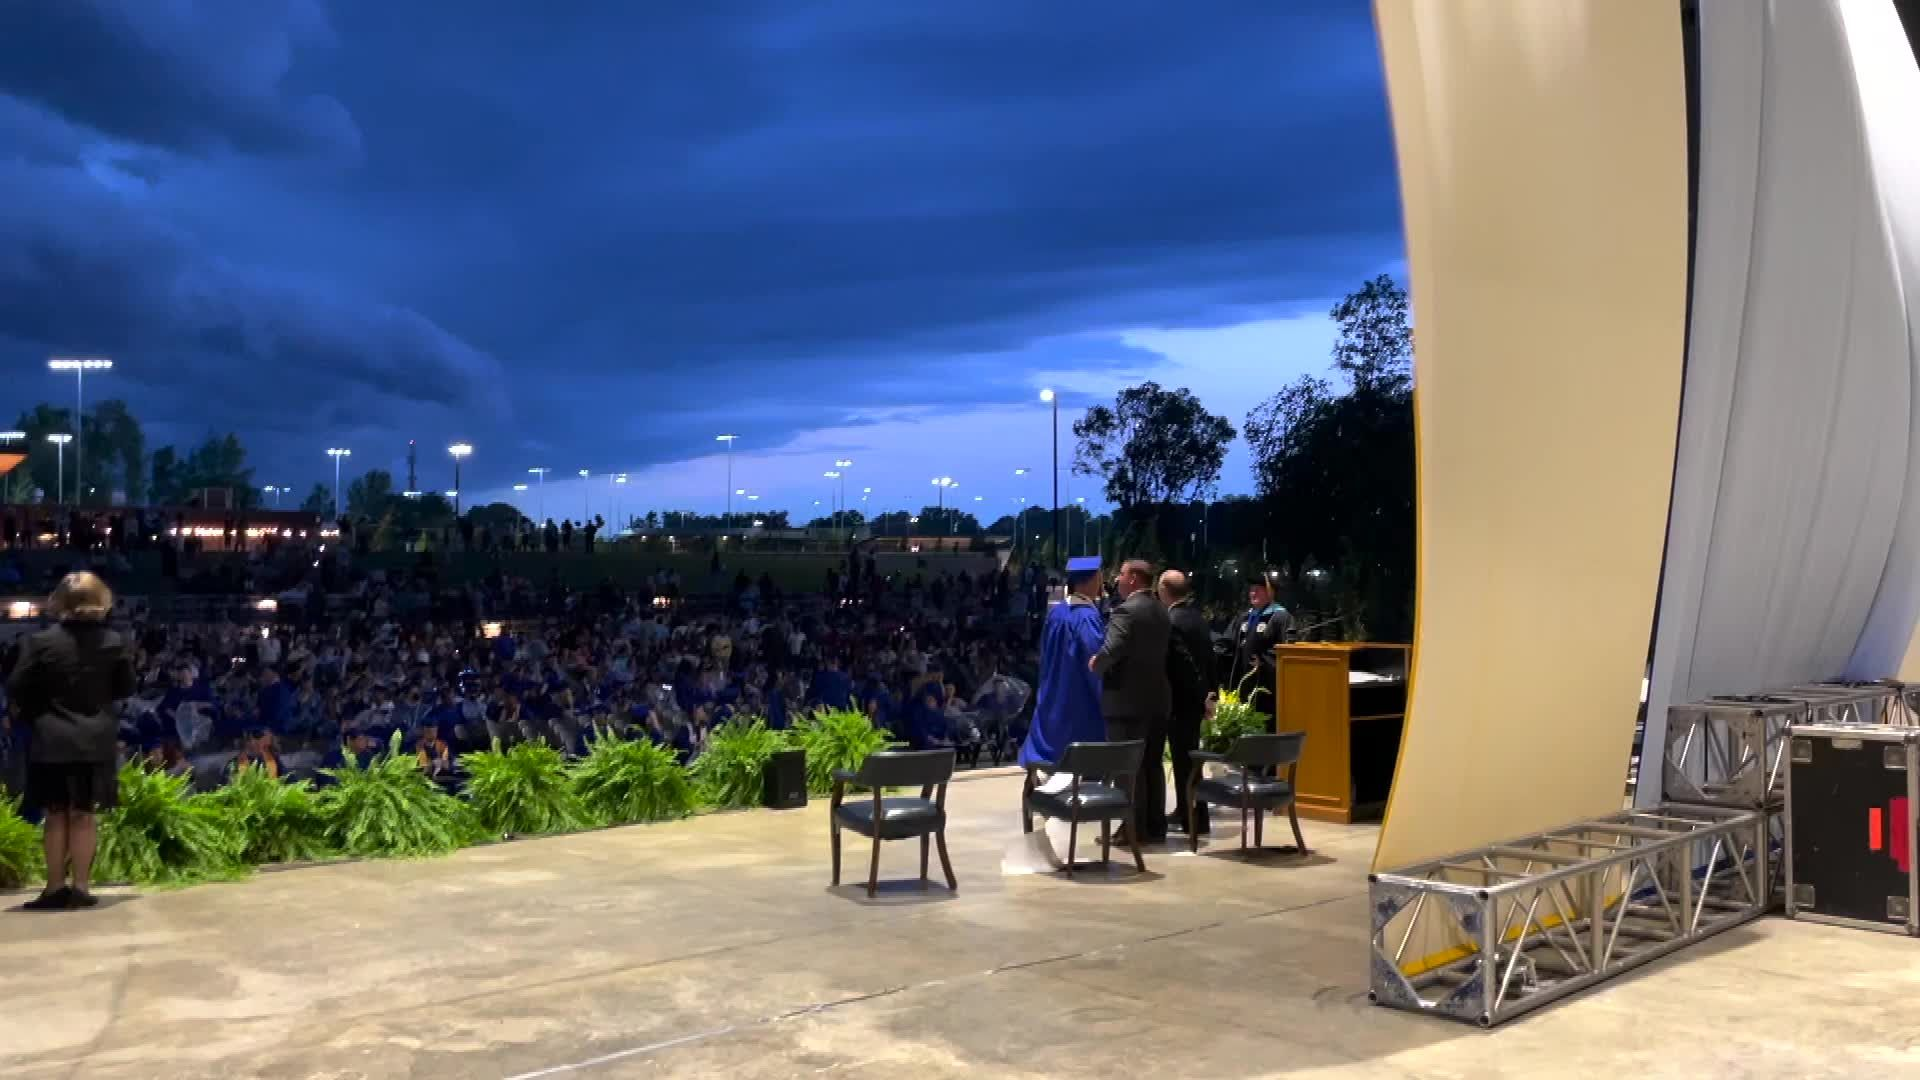 VIDEO: Strong winds delay graduation at Snead State Community College